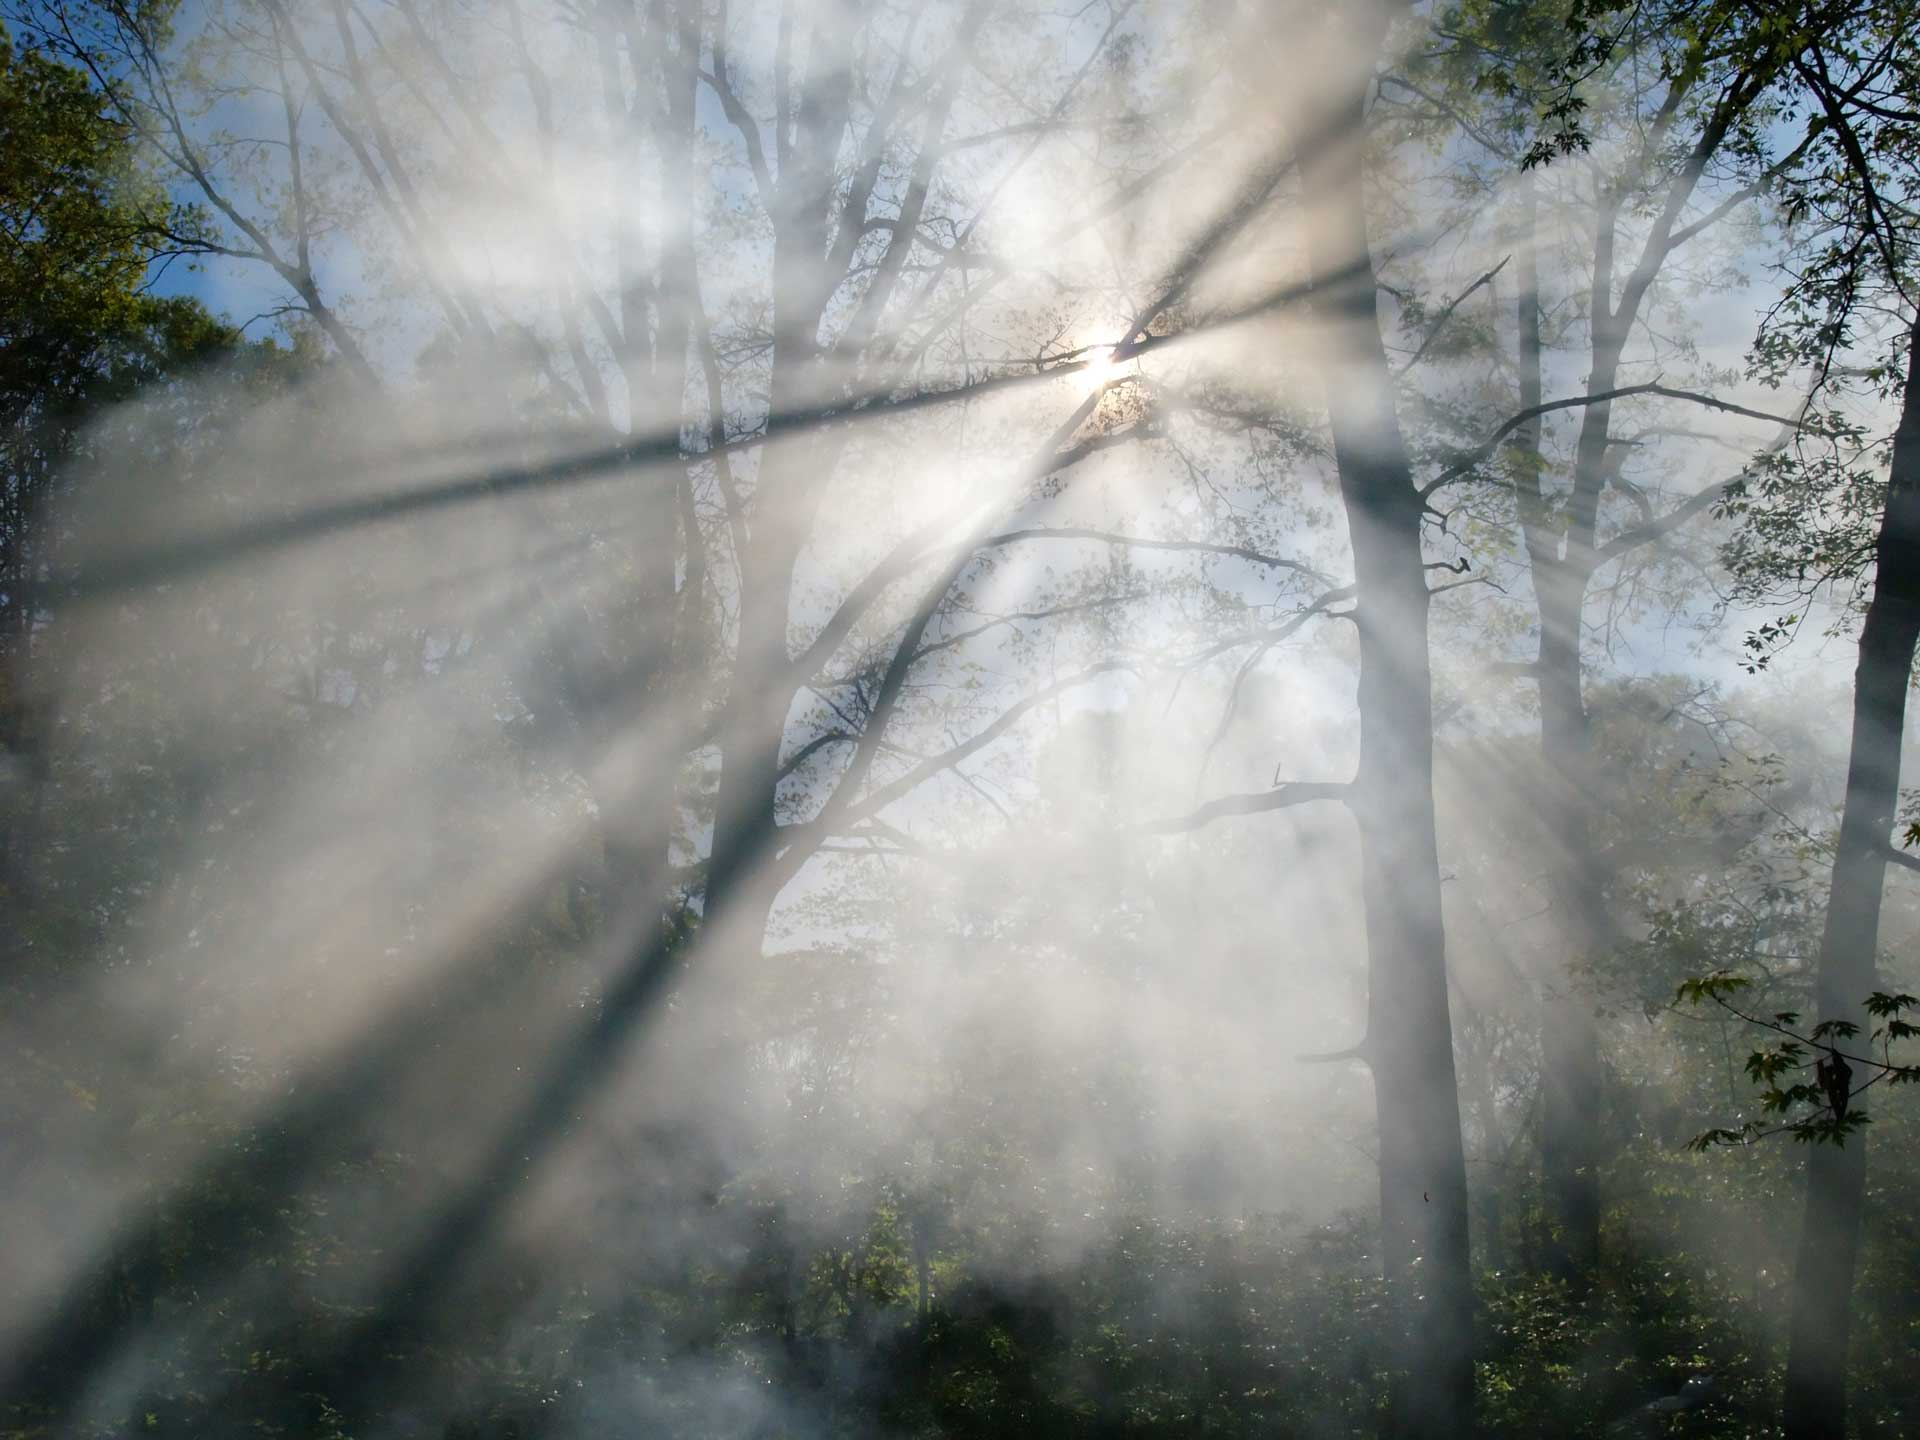 Smoke from a forest fire rises through the trees in a forest. Sunlight filters through the haze.